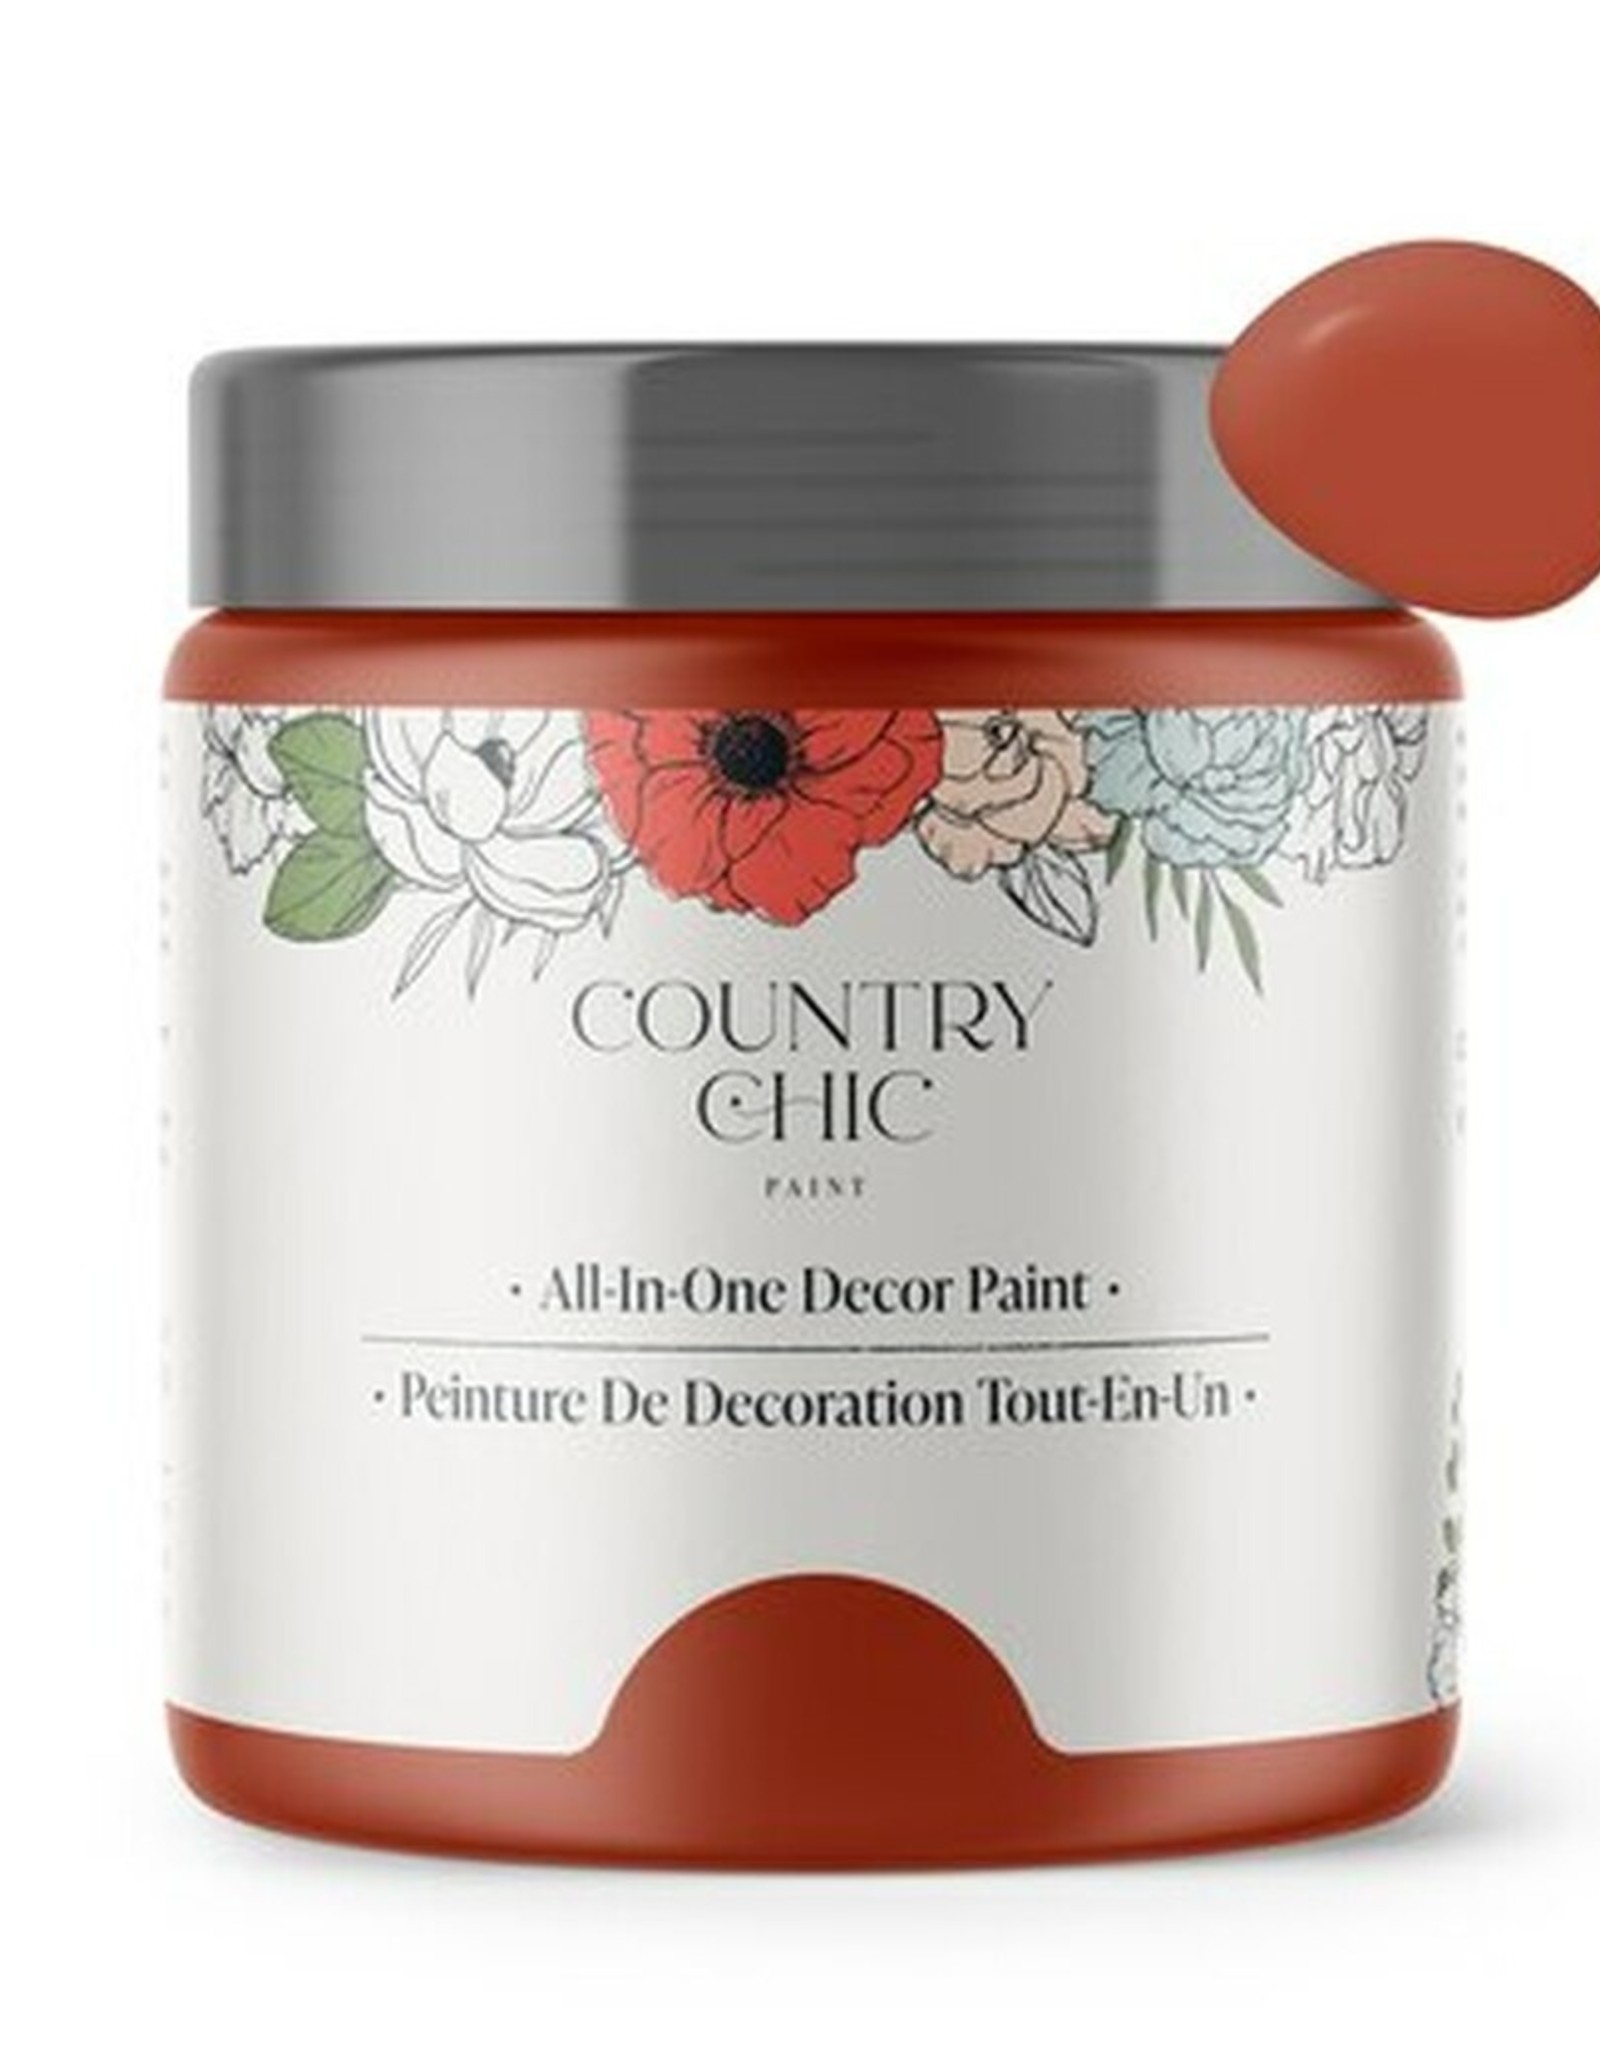 Country Chic Country Chic Paint Pint - 16oz Sparklers